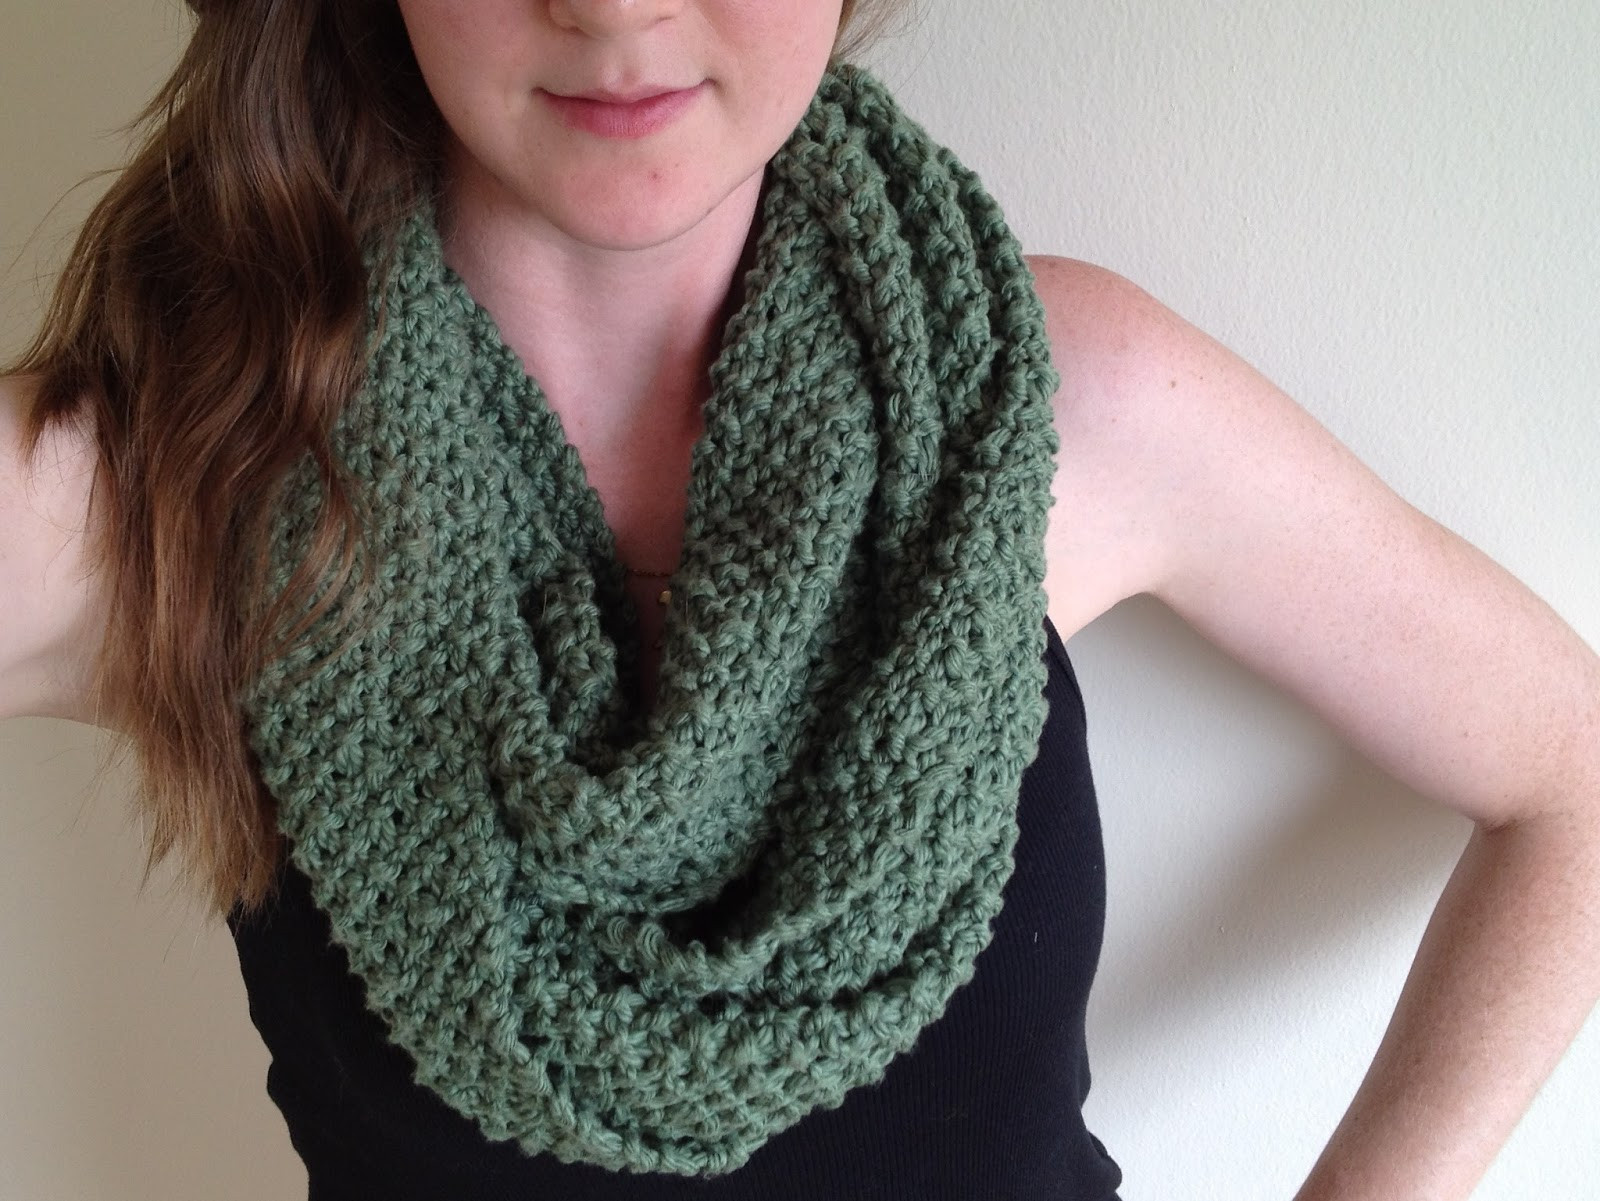 Lovely Tinselmint How to Wear An Infinity Scarf Free Infinity Scarf Pattern Of Marvelous 48 Images Free Infinity Scarf Pattern